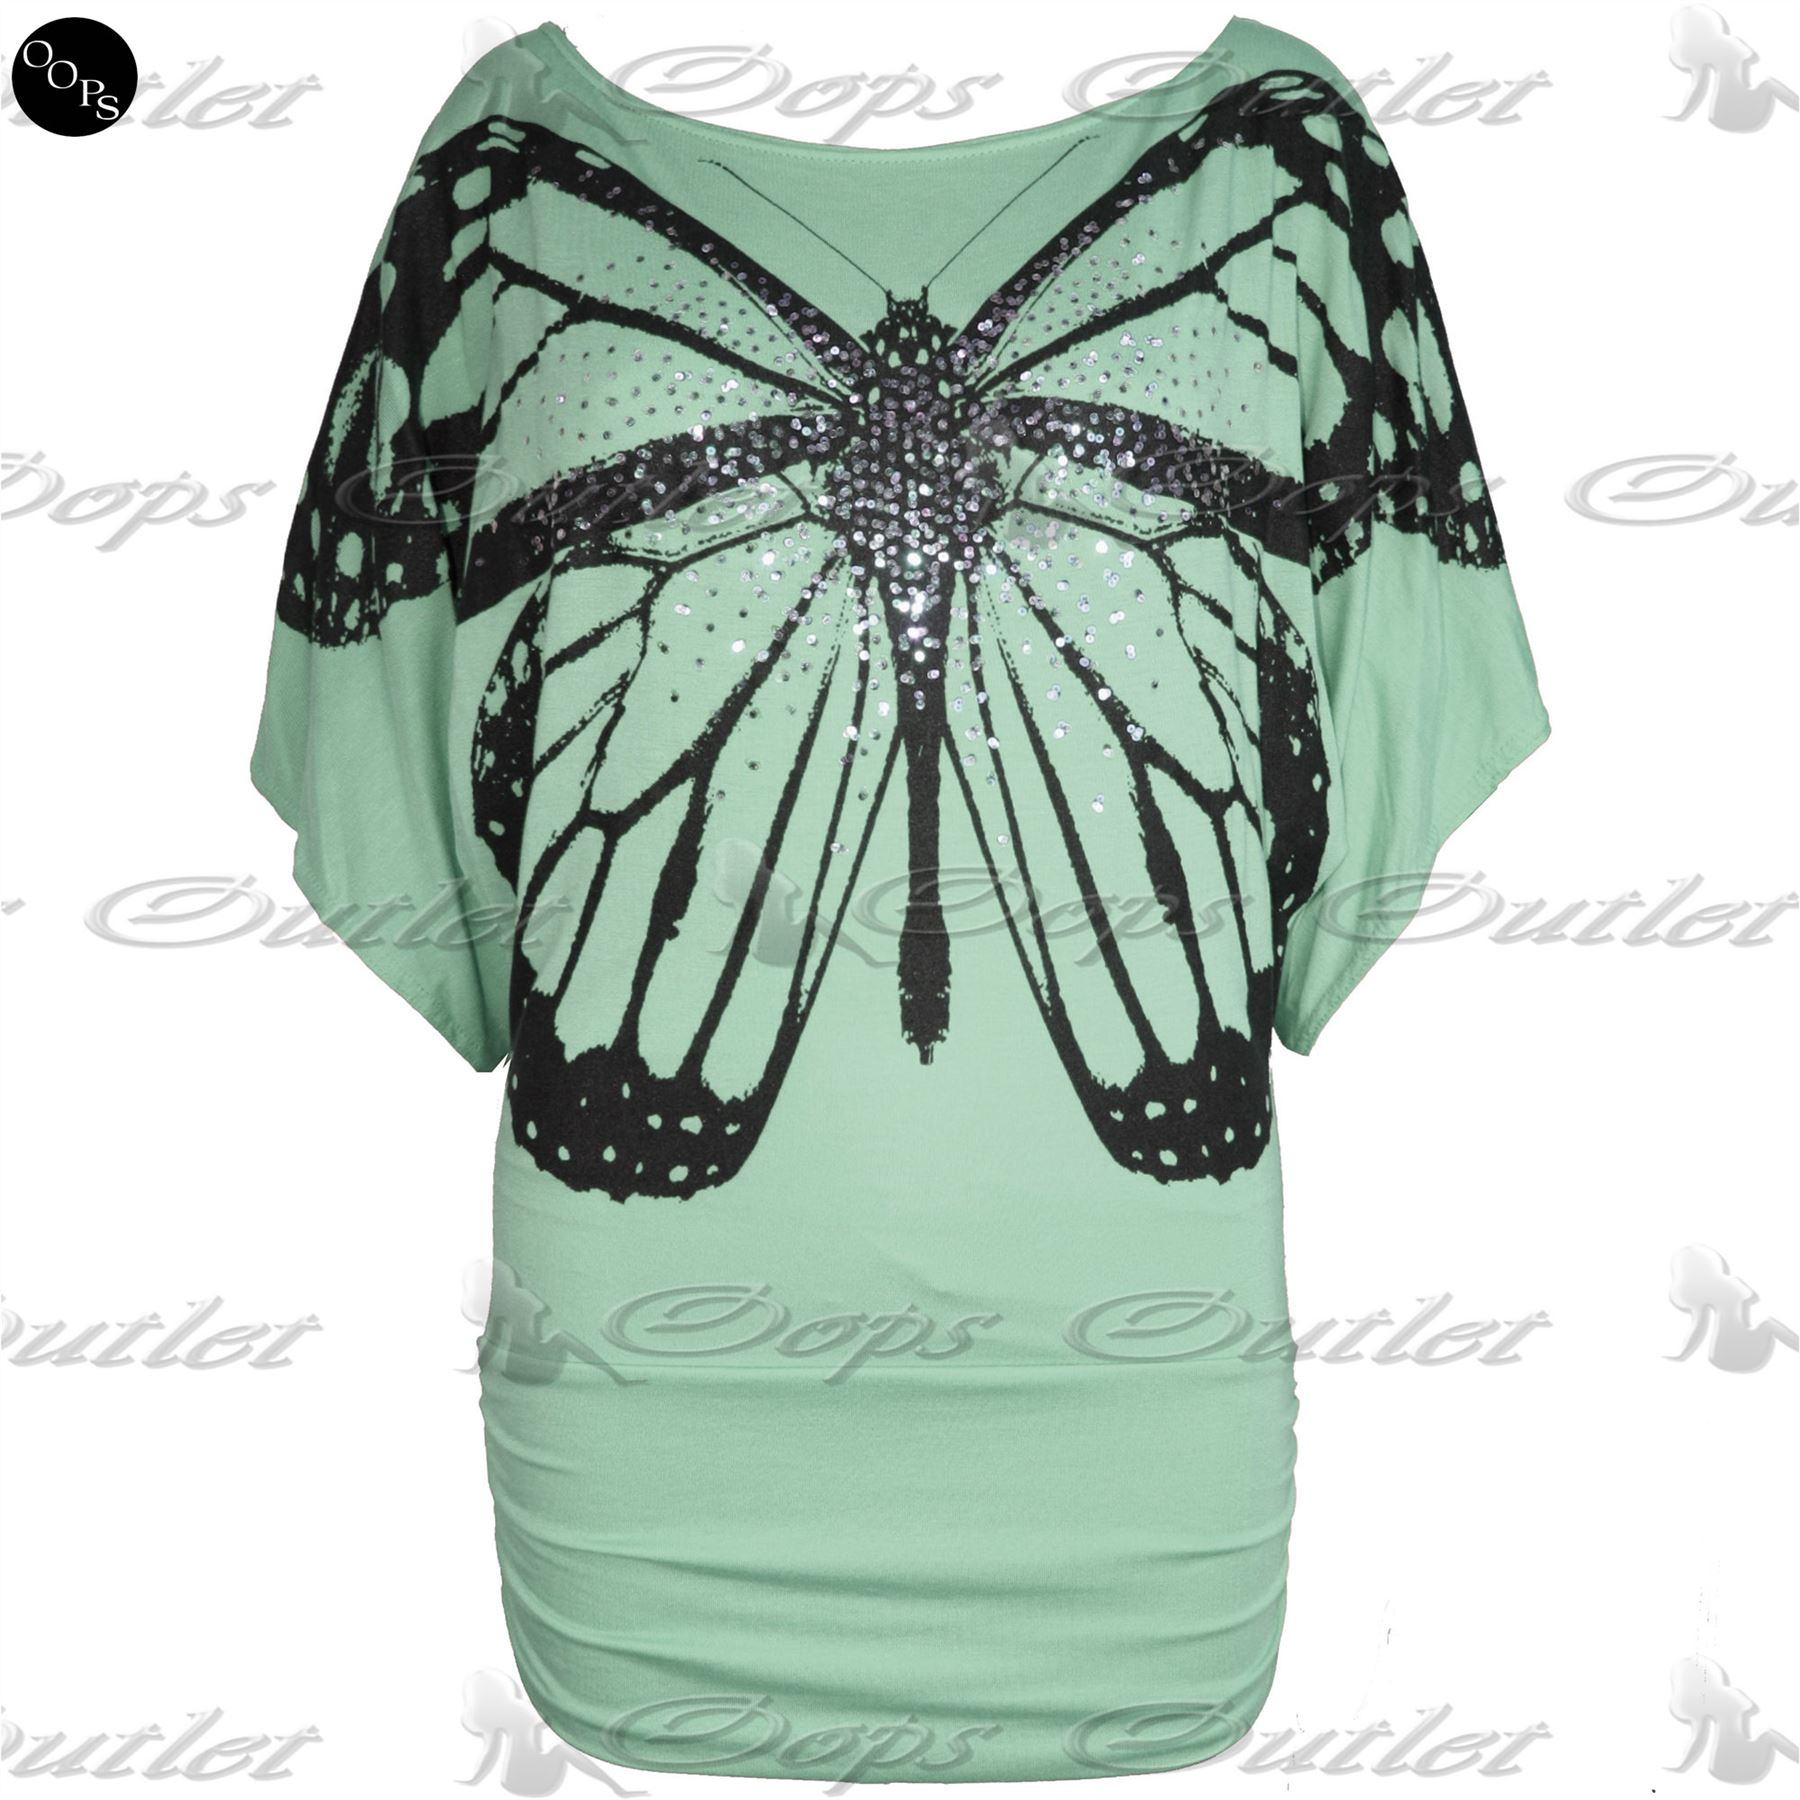 Womens-Off-Shoulder-Ladies-Celeb-Print-Sequin-Butterfly-Batwing-Side-Ruched-Top